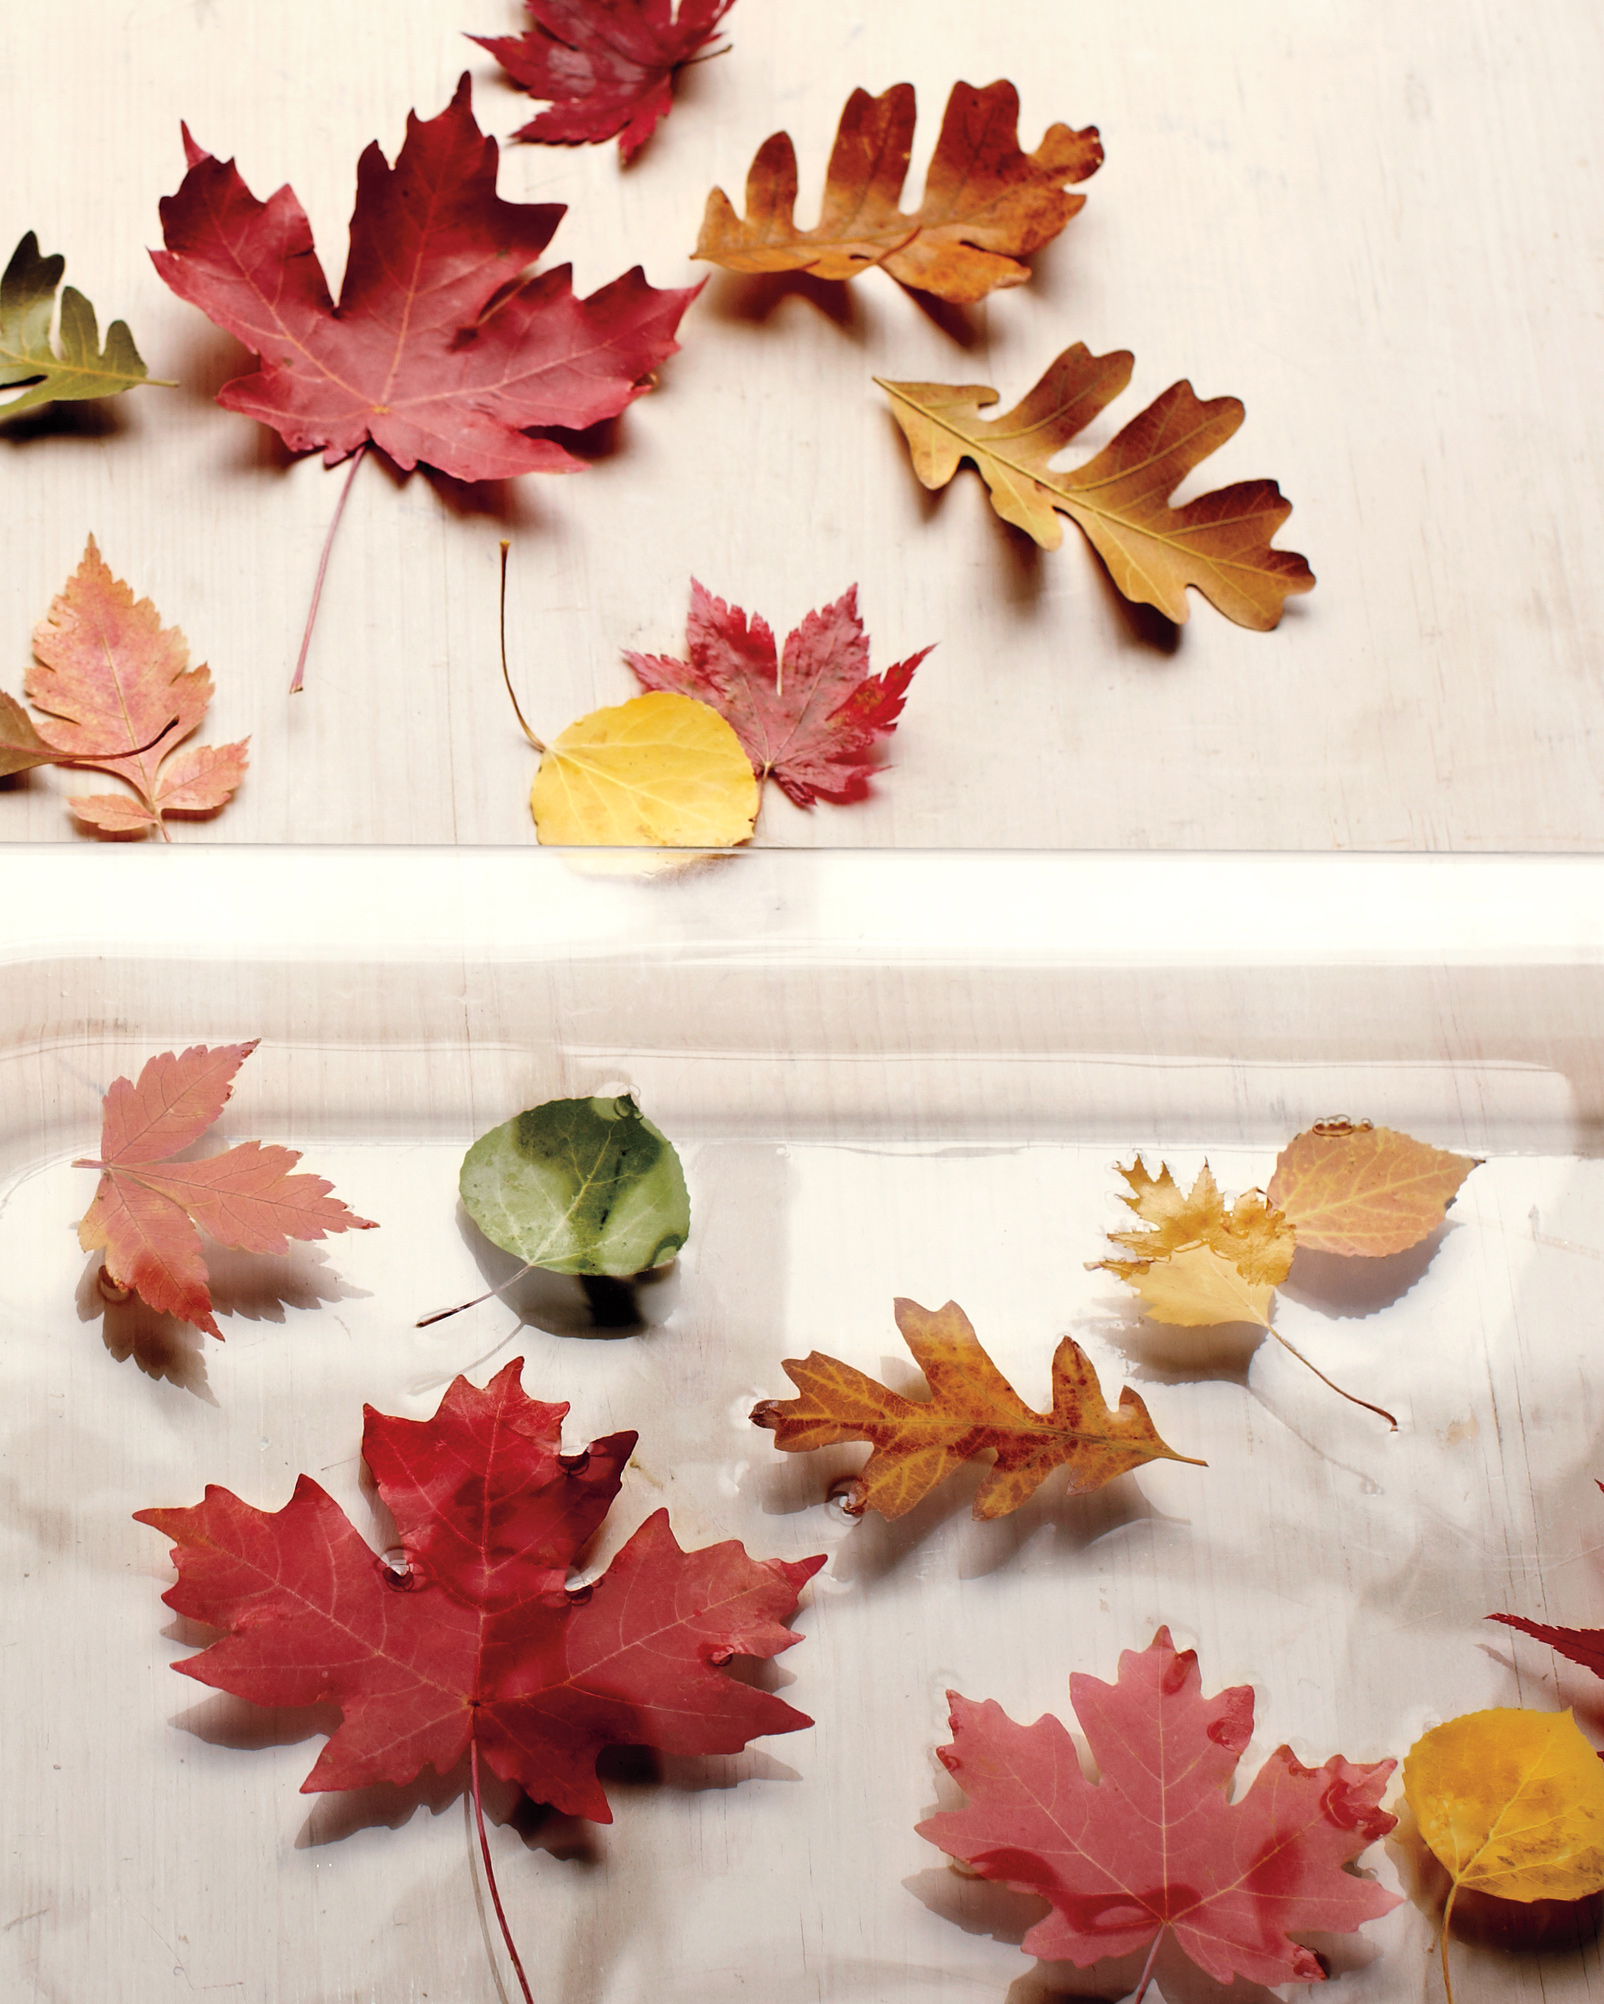 12 Leaf Crafts That Celebrate All the Colors of Fall